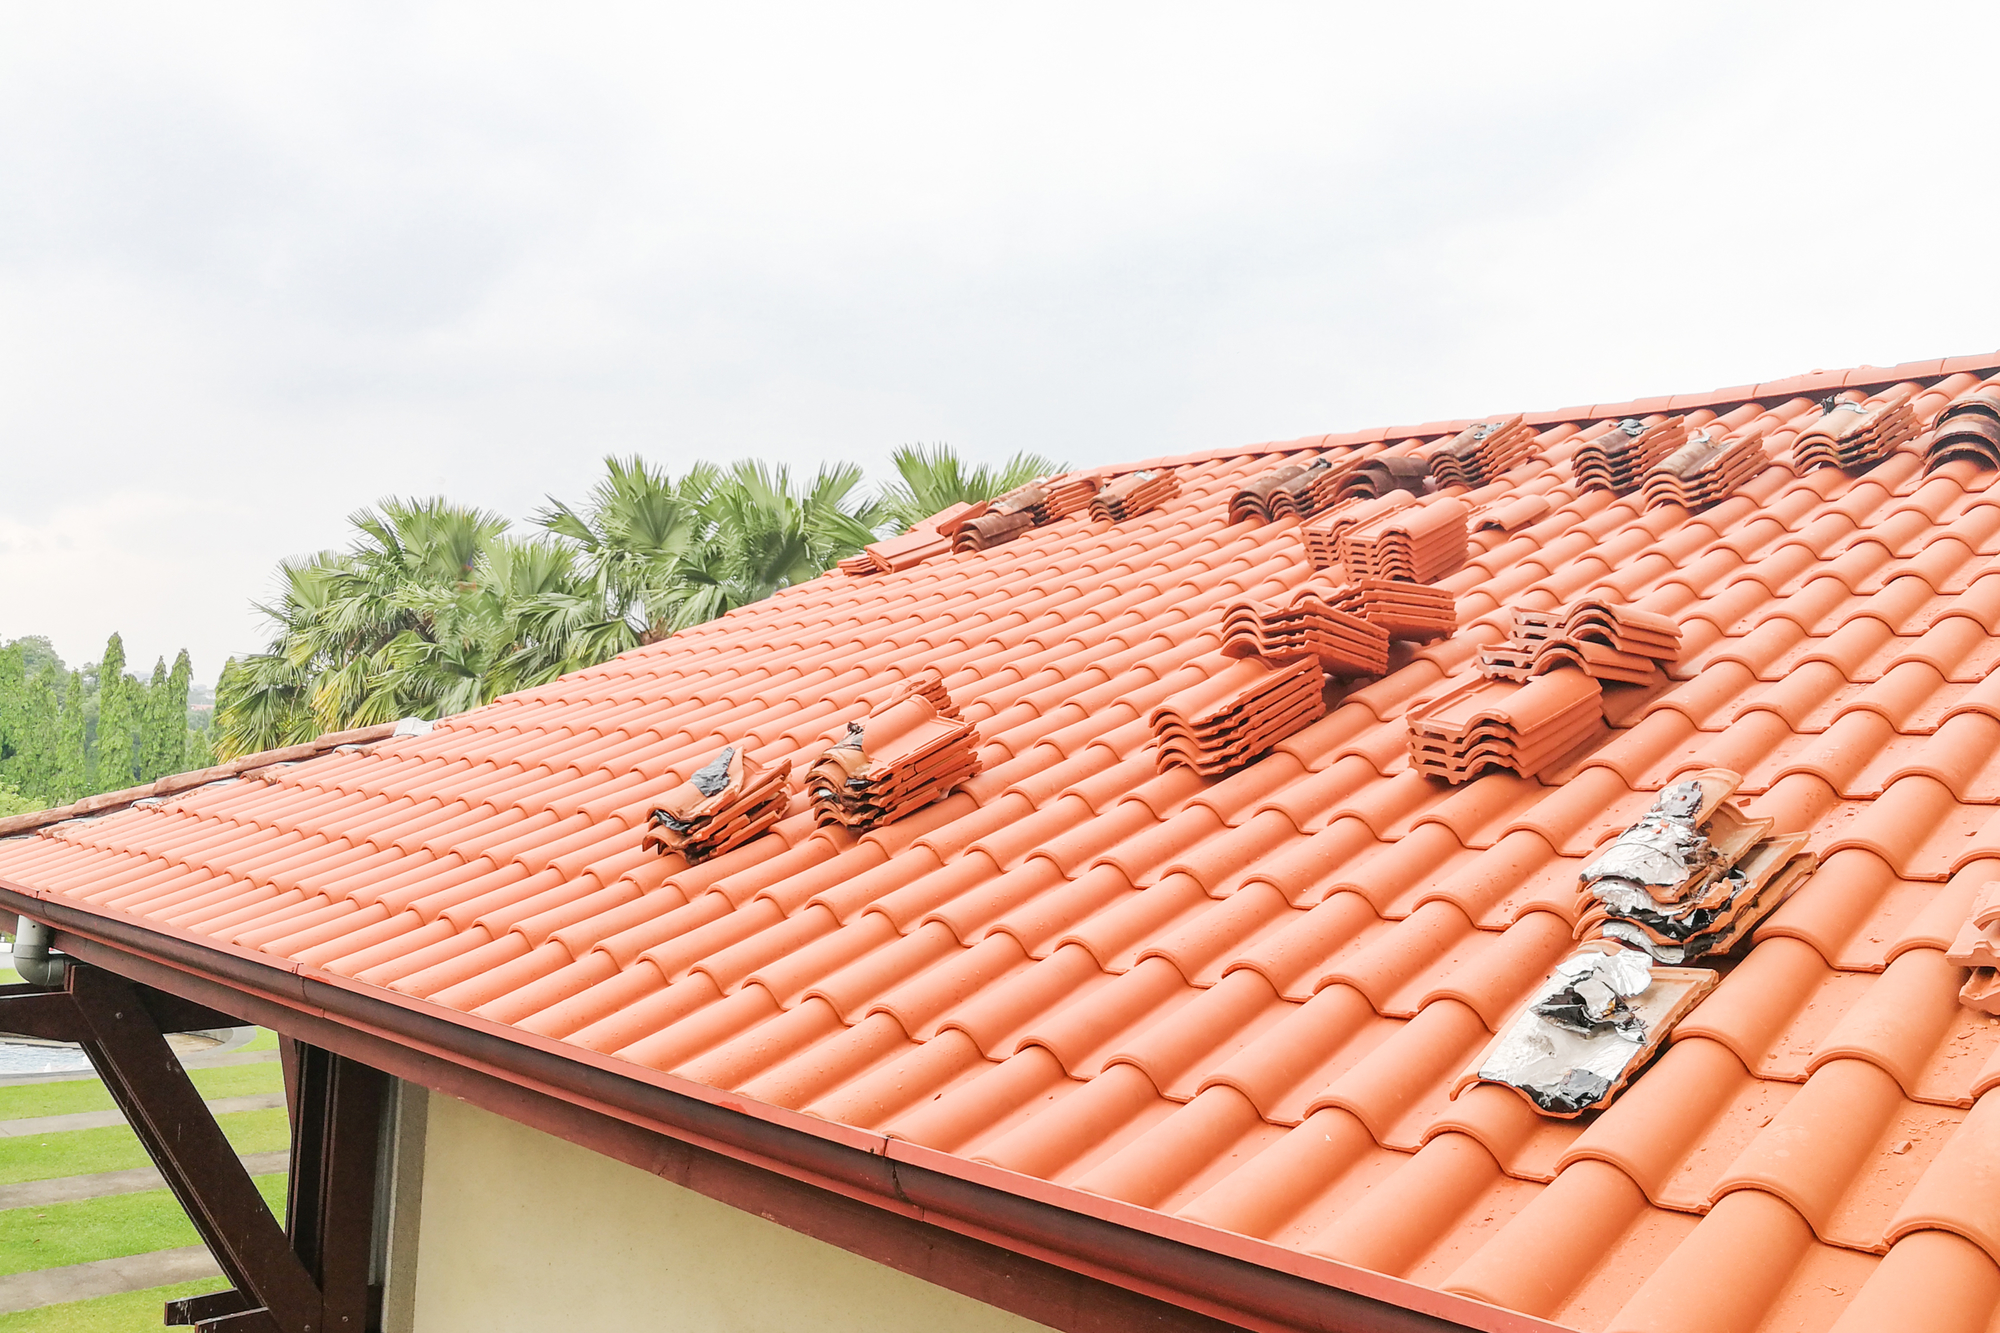 Old tile roofing material being replaced